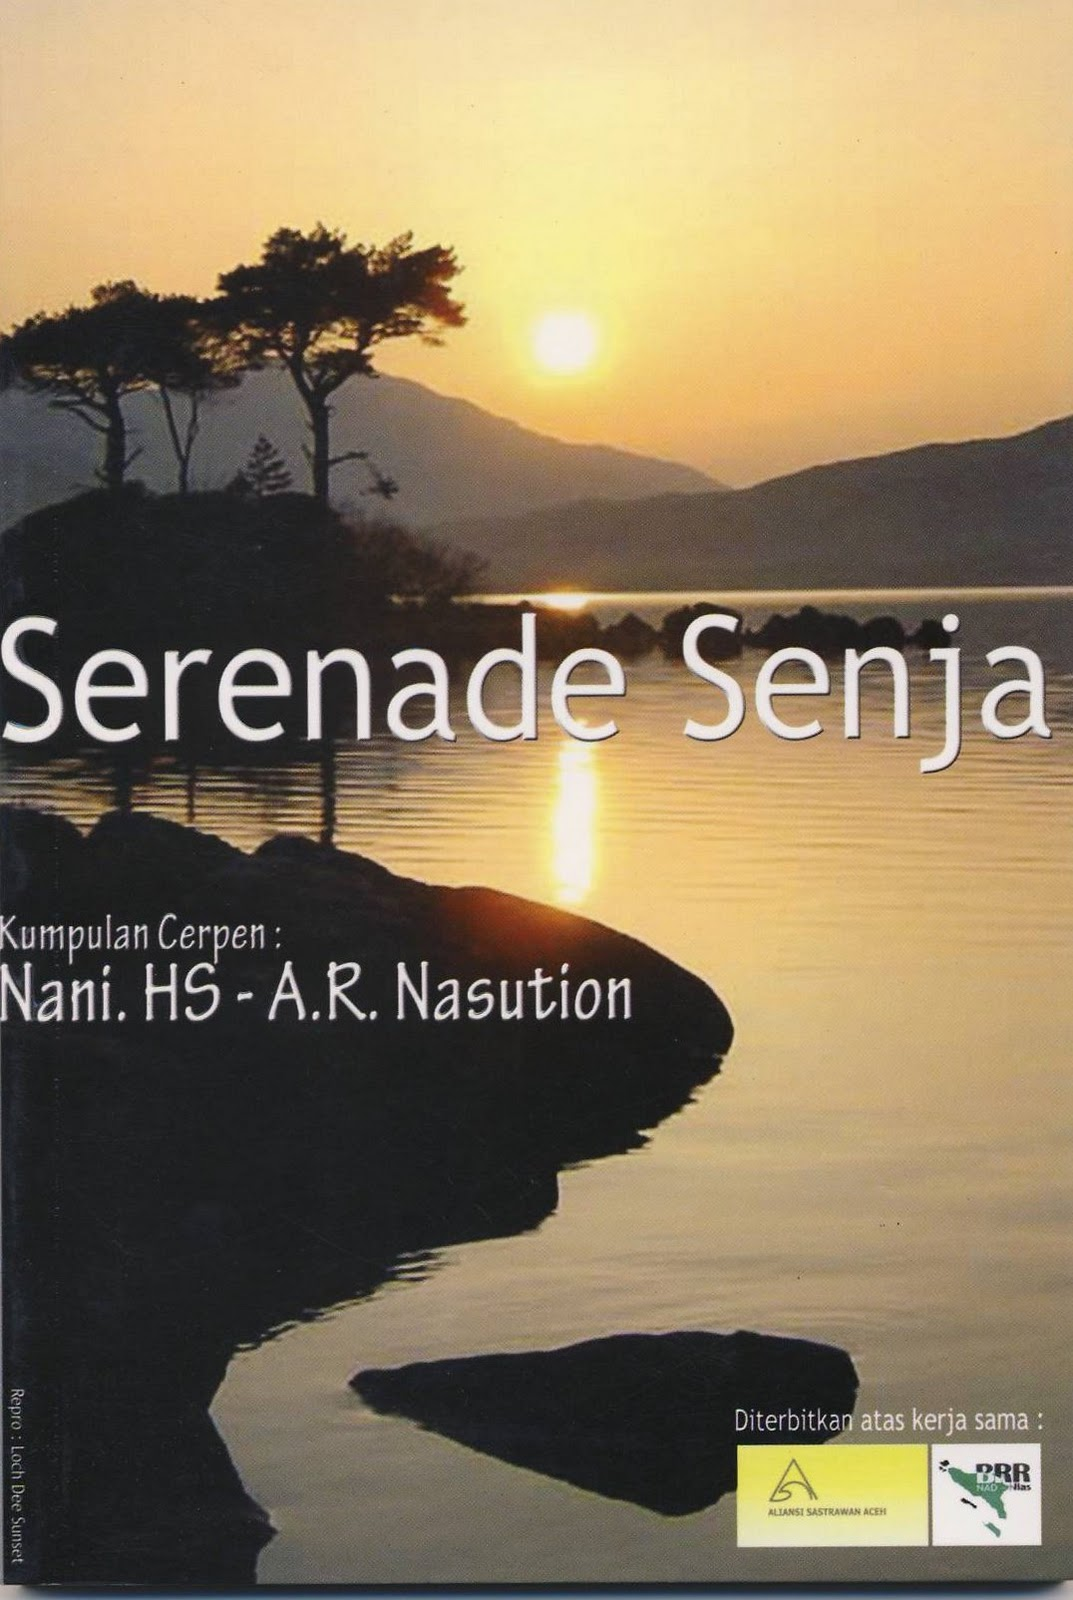 Review Buku: Serenade Senja